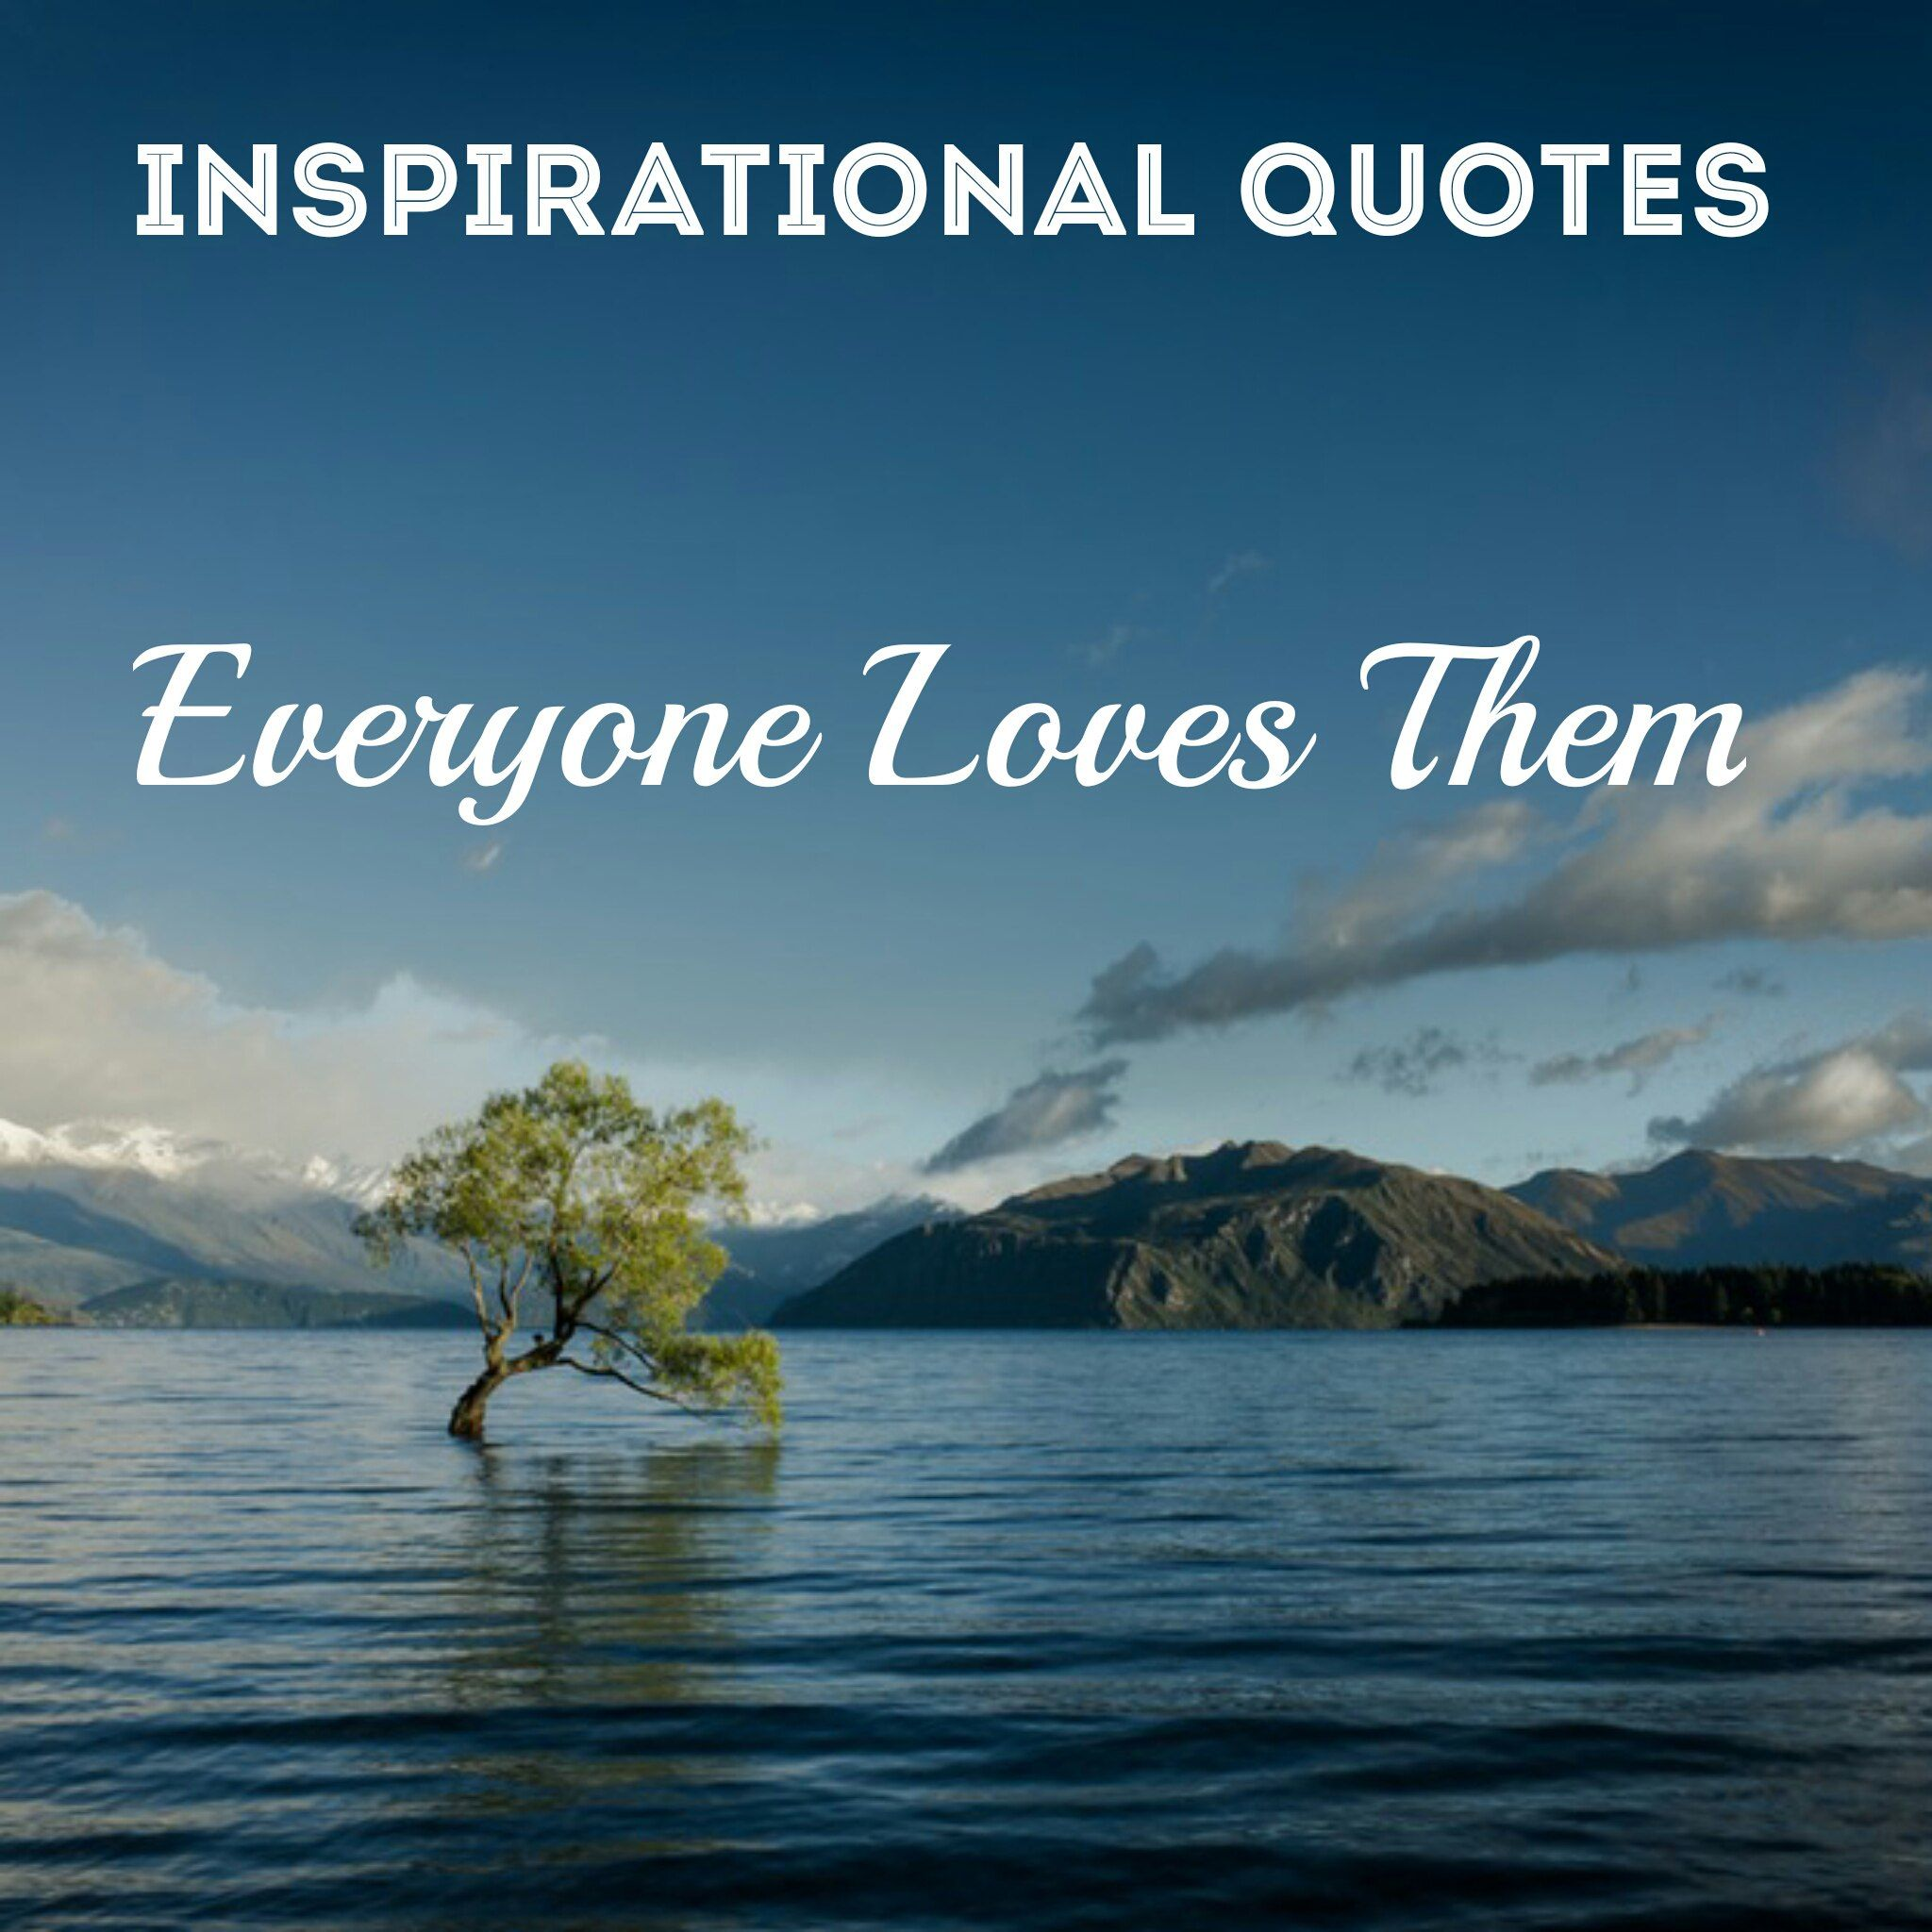 Best Quotes Of All Time About Life 154 Best Inspirational Quotes & Sayings Of All Time